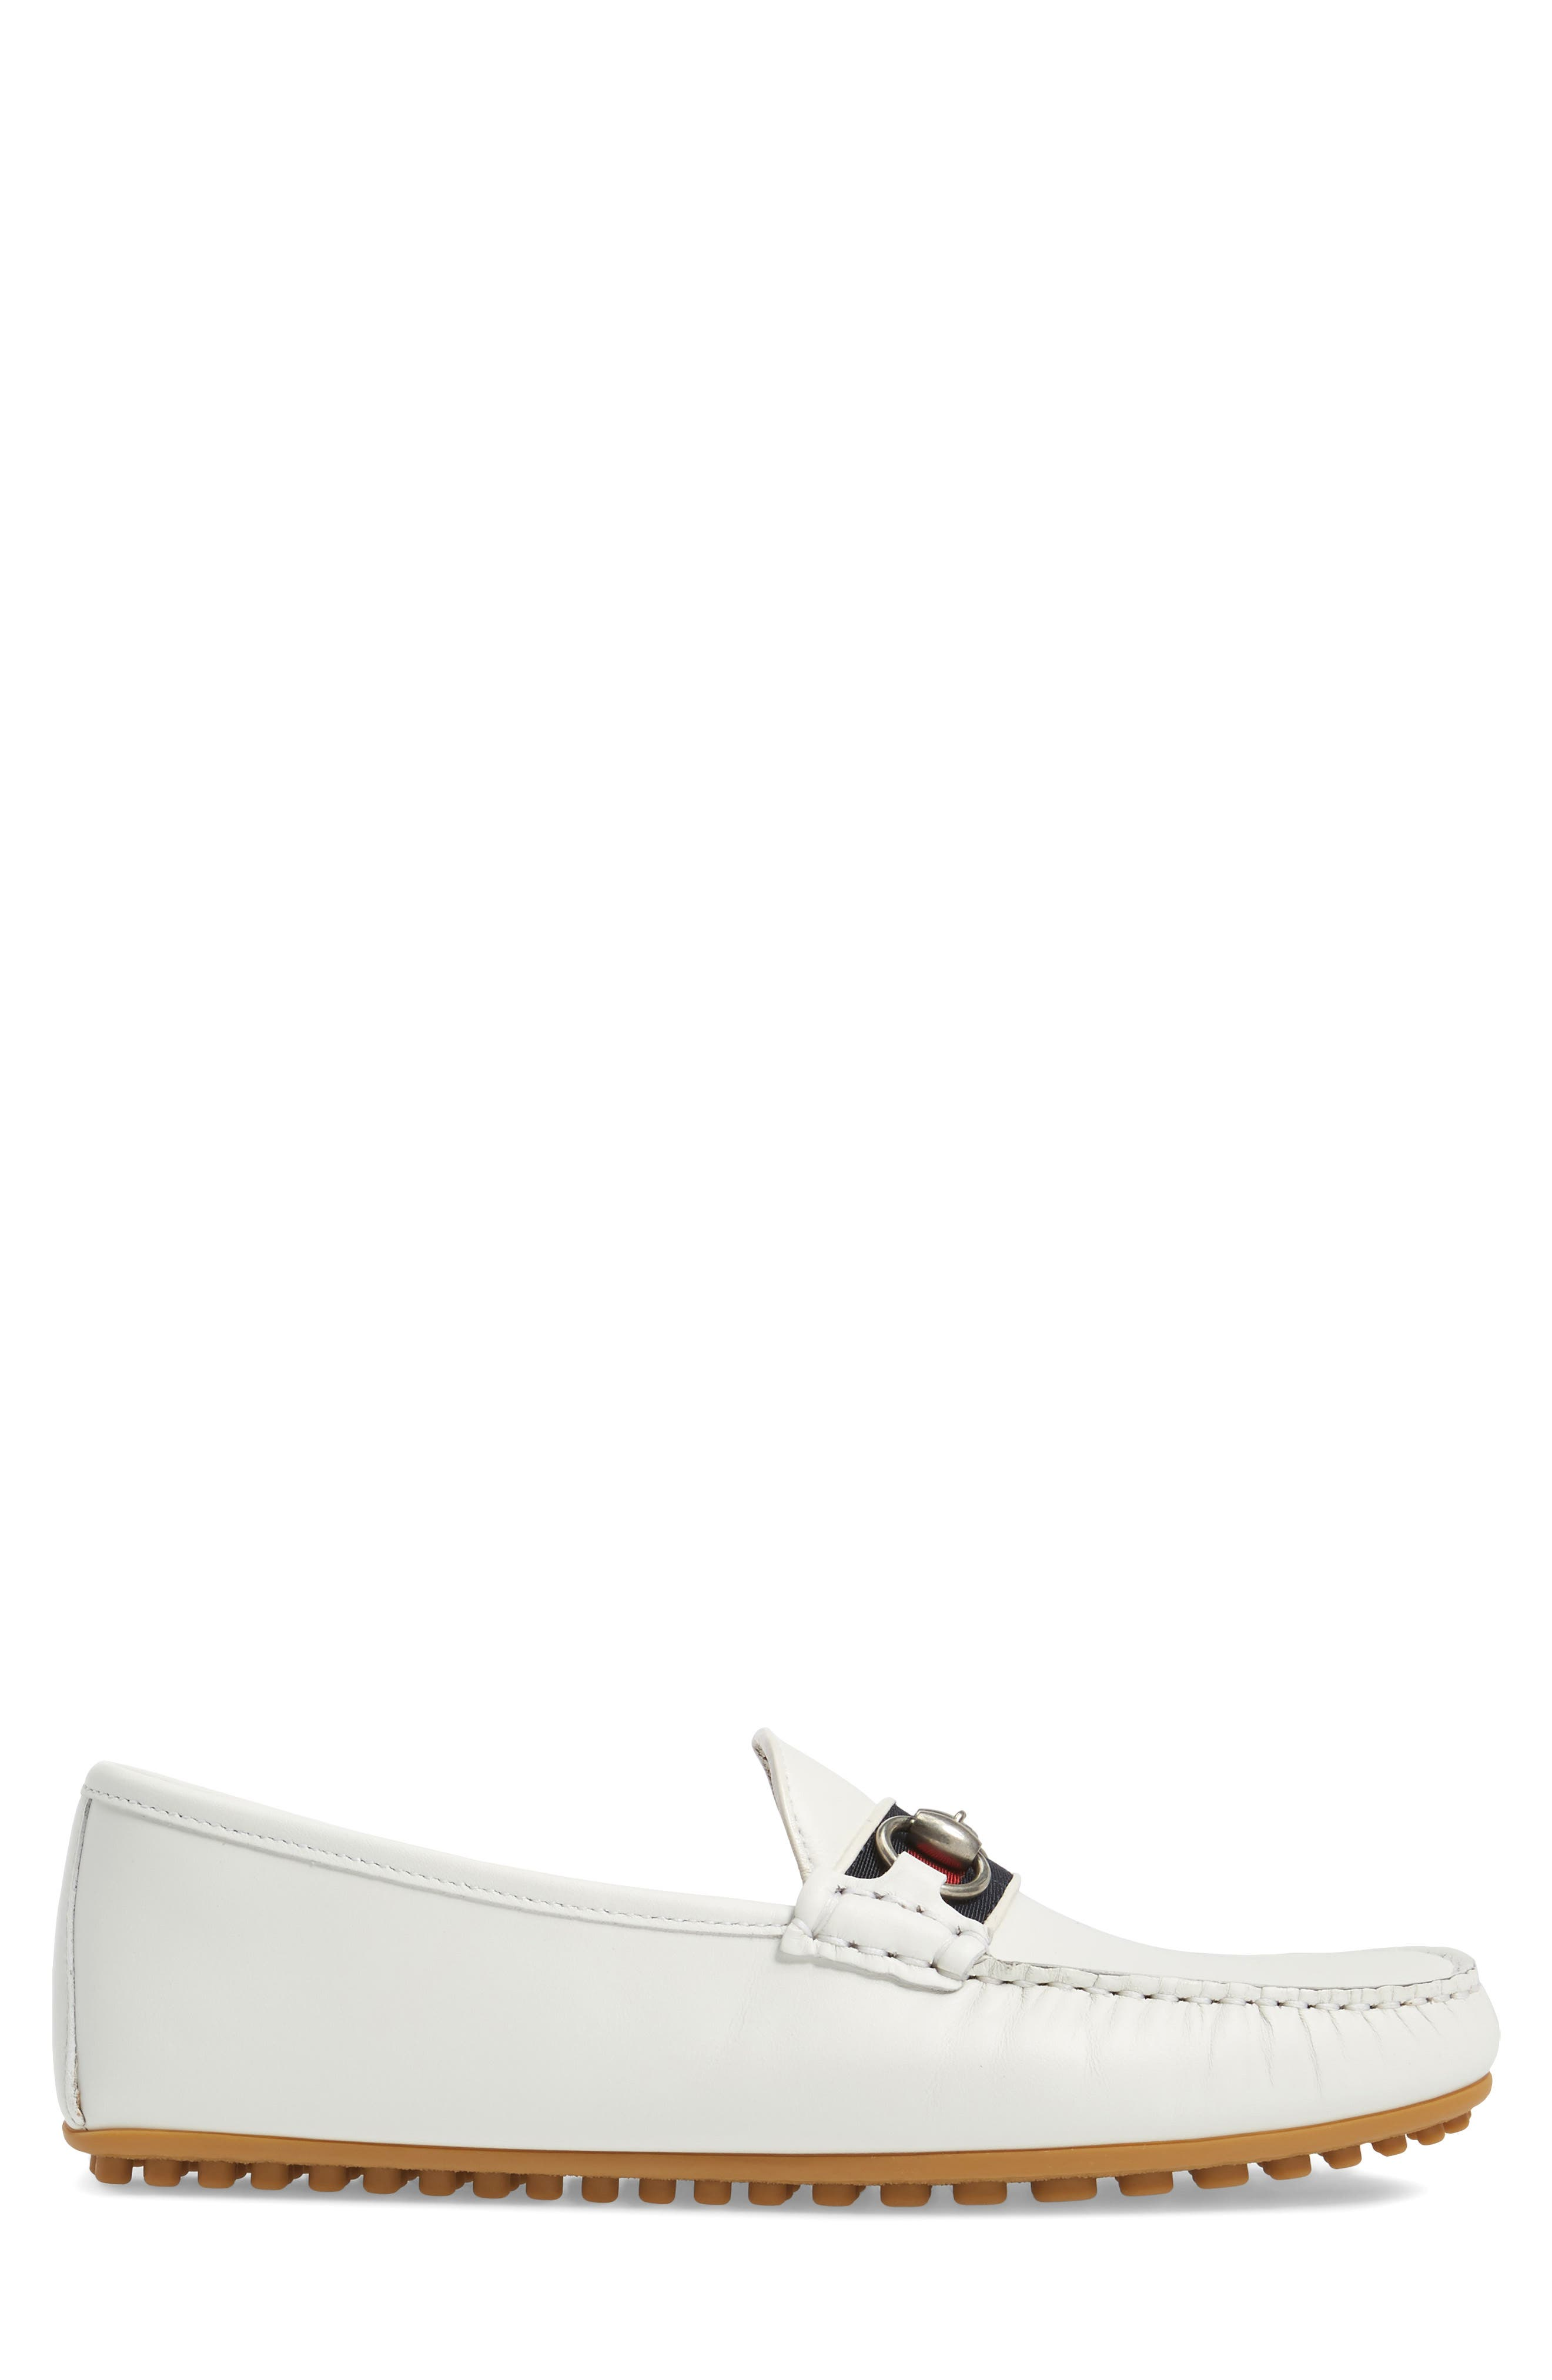 Kanye Bit Loafer,                             Alternate thumbnail 3, color,                             White Leather